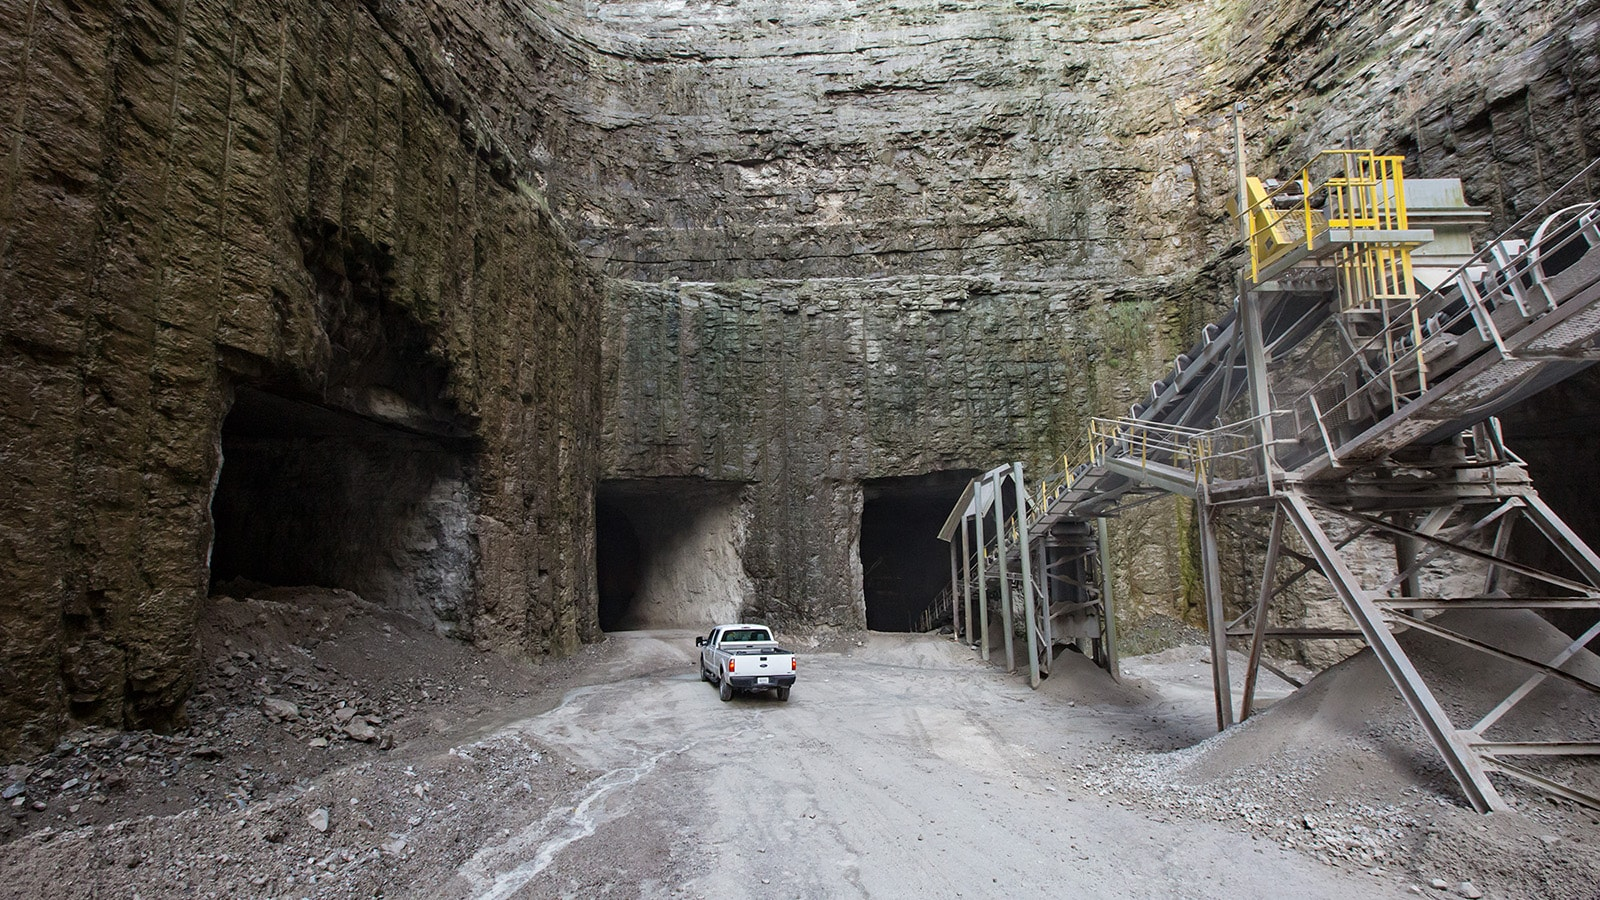 A pickup truck drives into the mine entrance